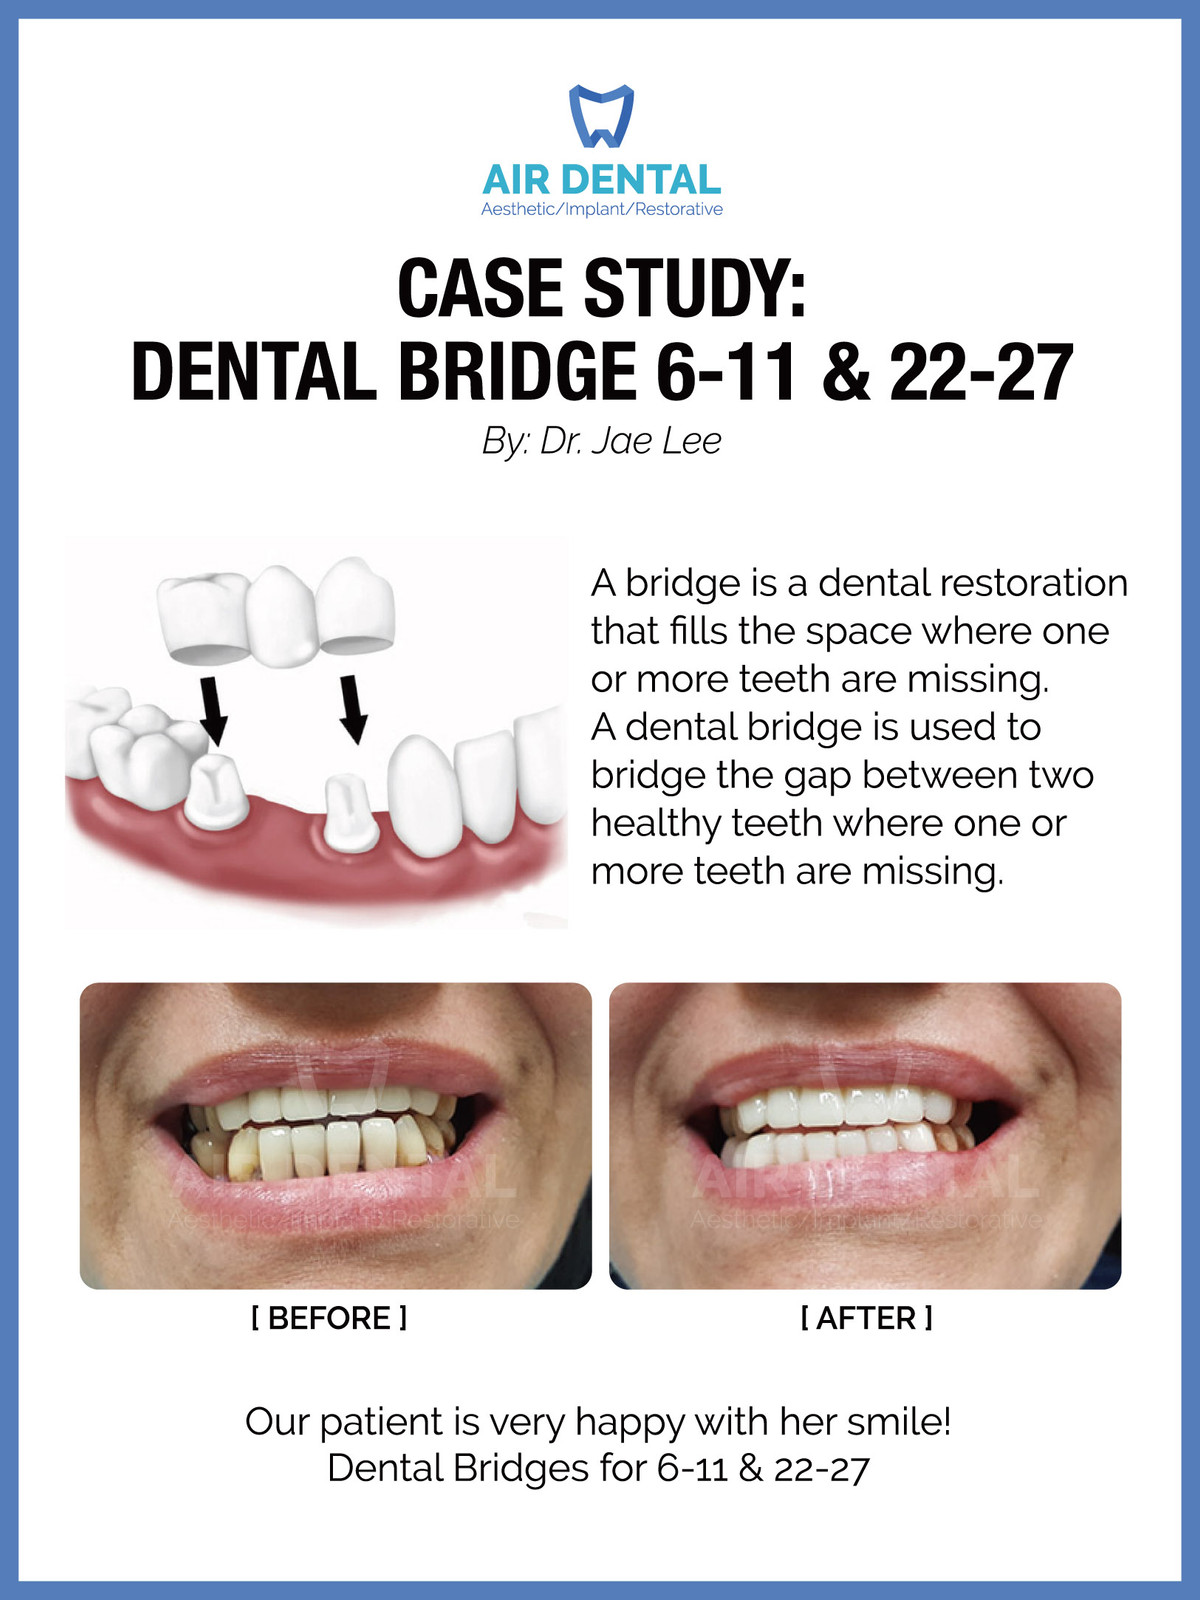 Filing Canine Teeth Before And After : filing, canine, teeth, before, after, Dental, Bridge, 22-27